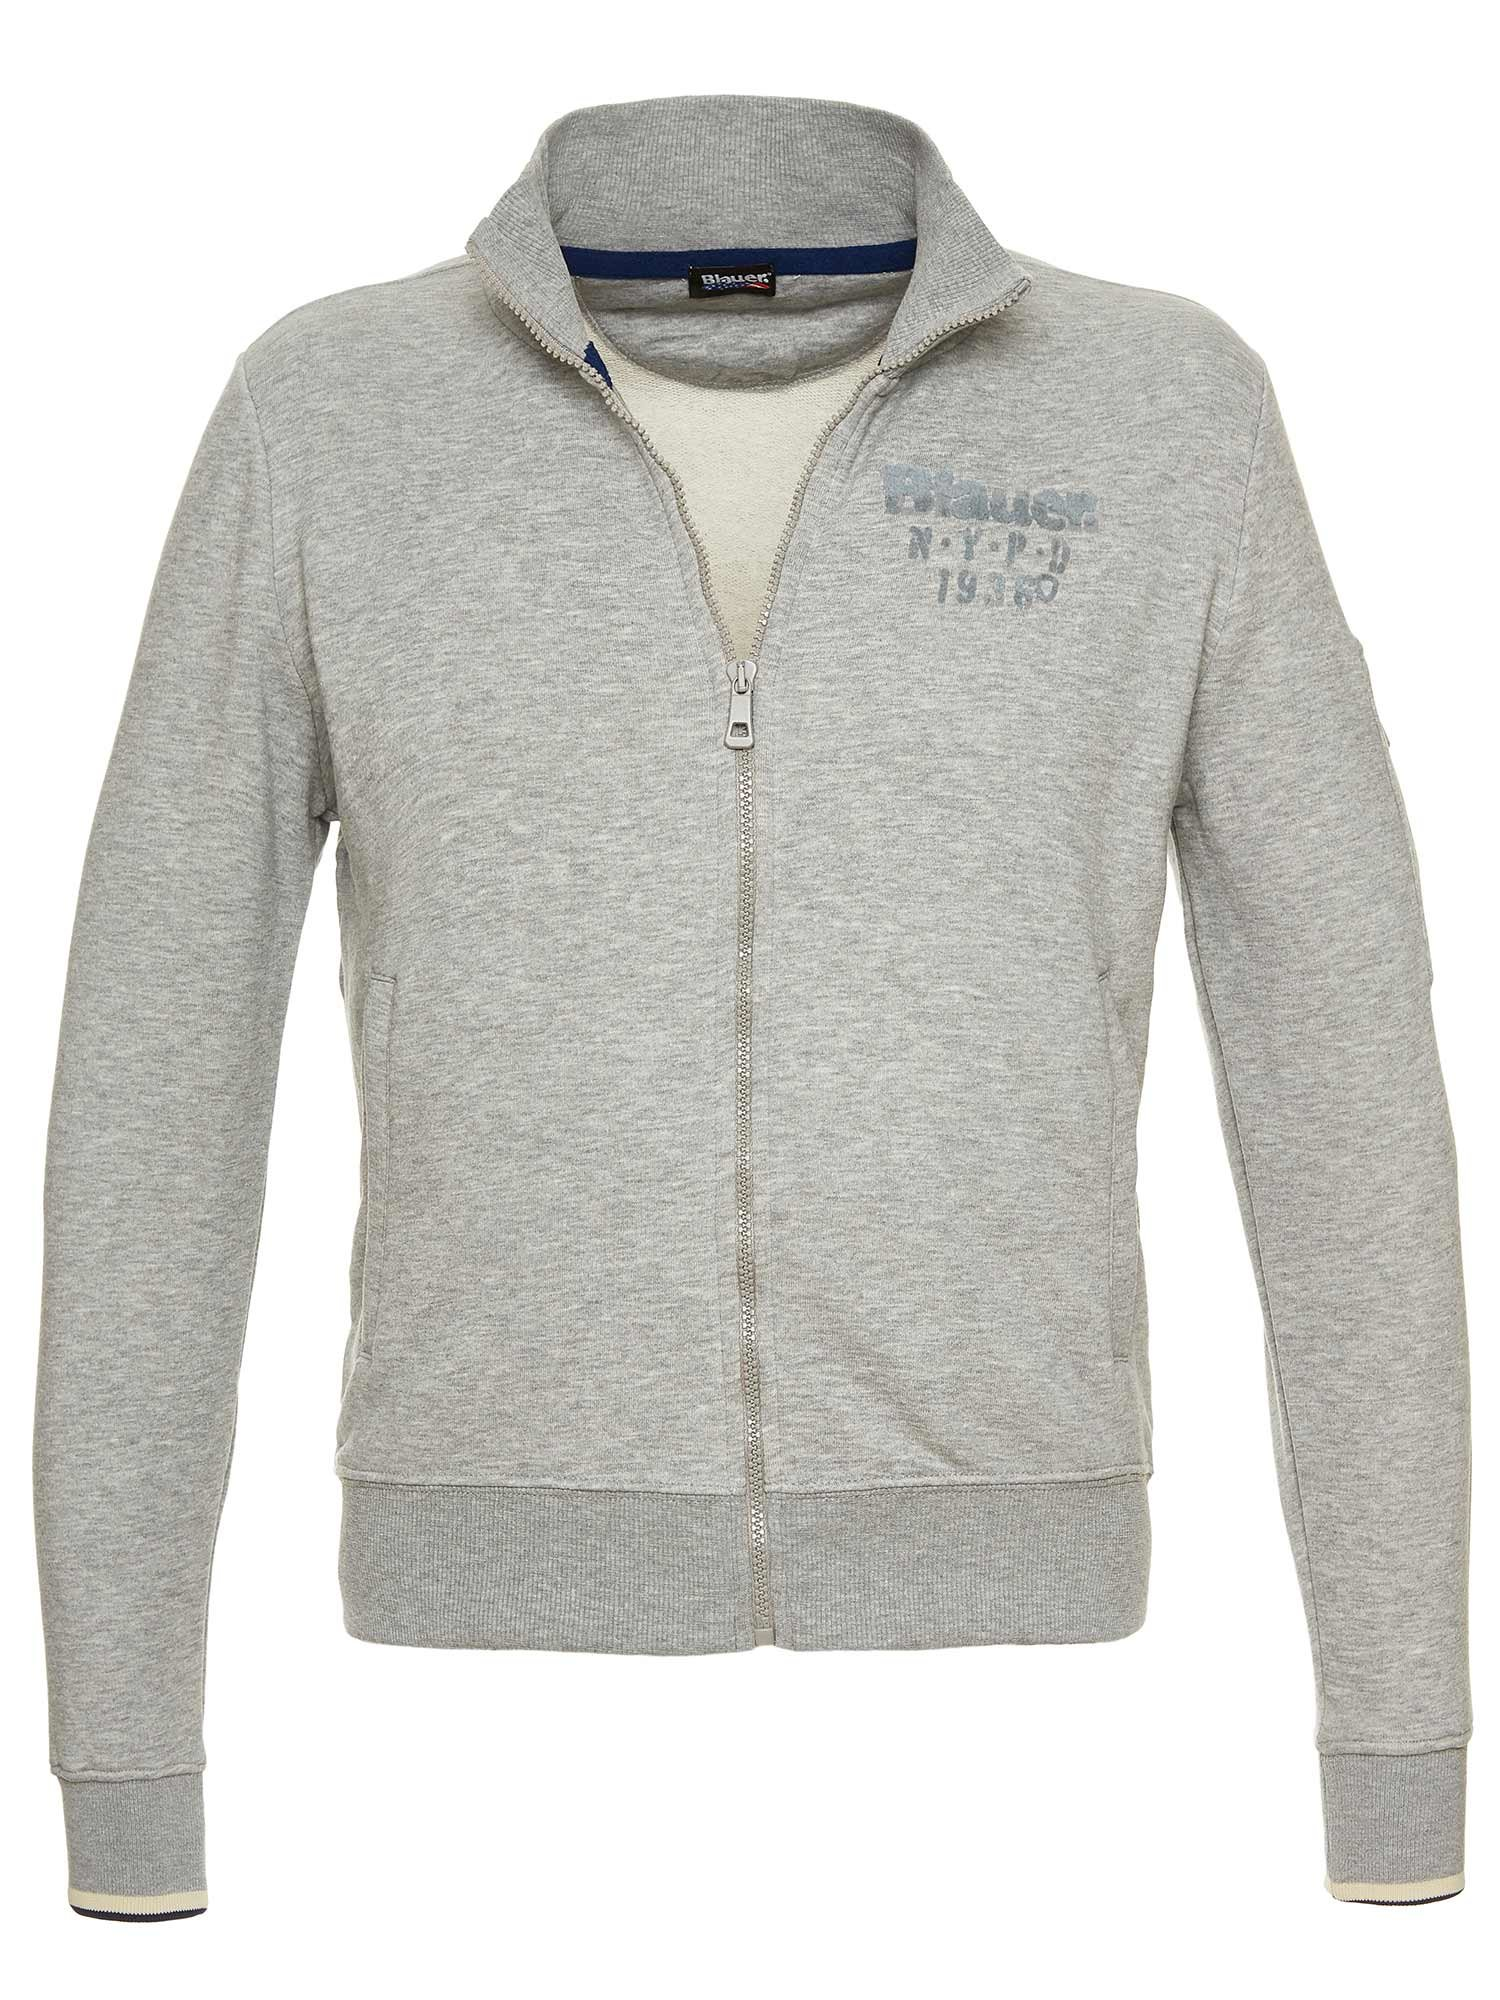 Blauer - N.Y.P.D. SWEATSHIRT - Light Grey - Blauer